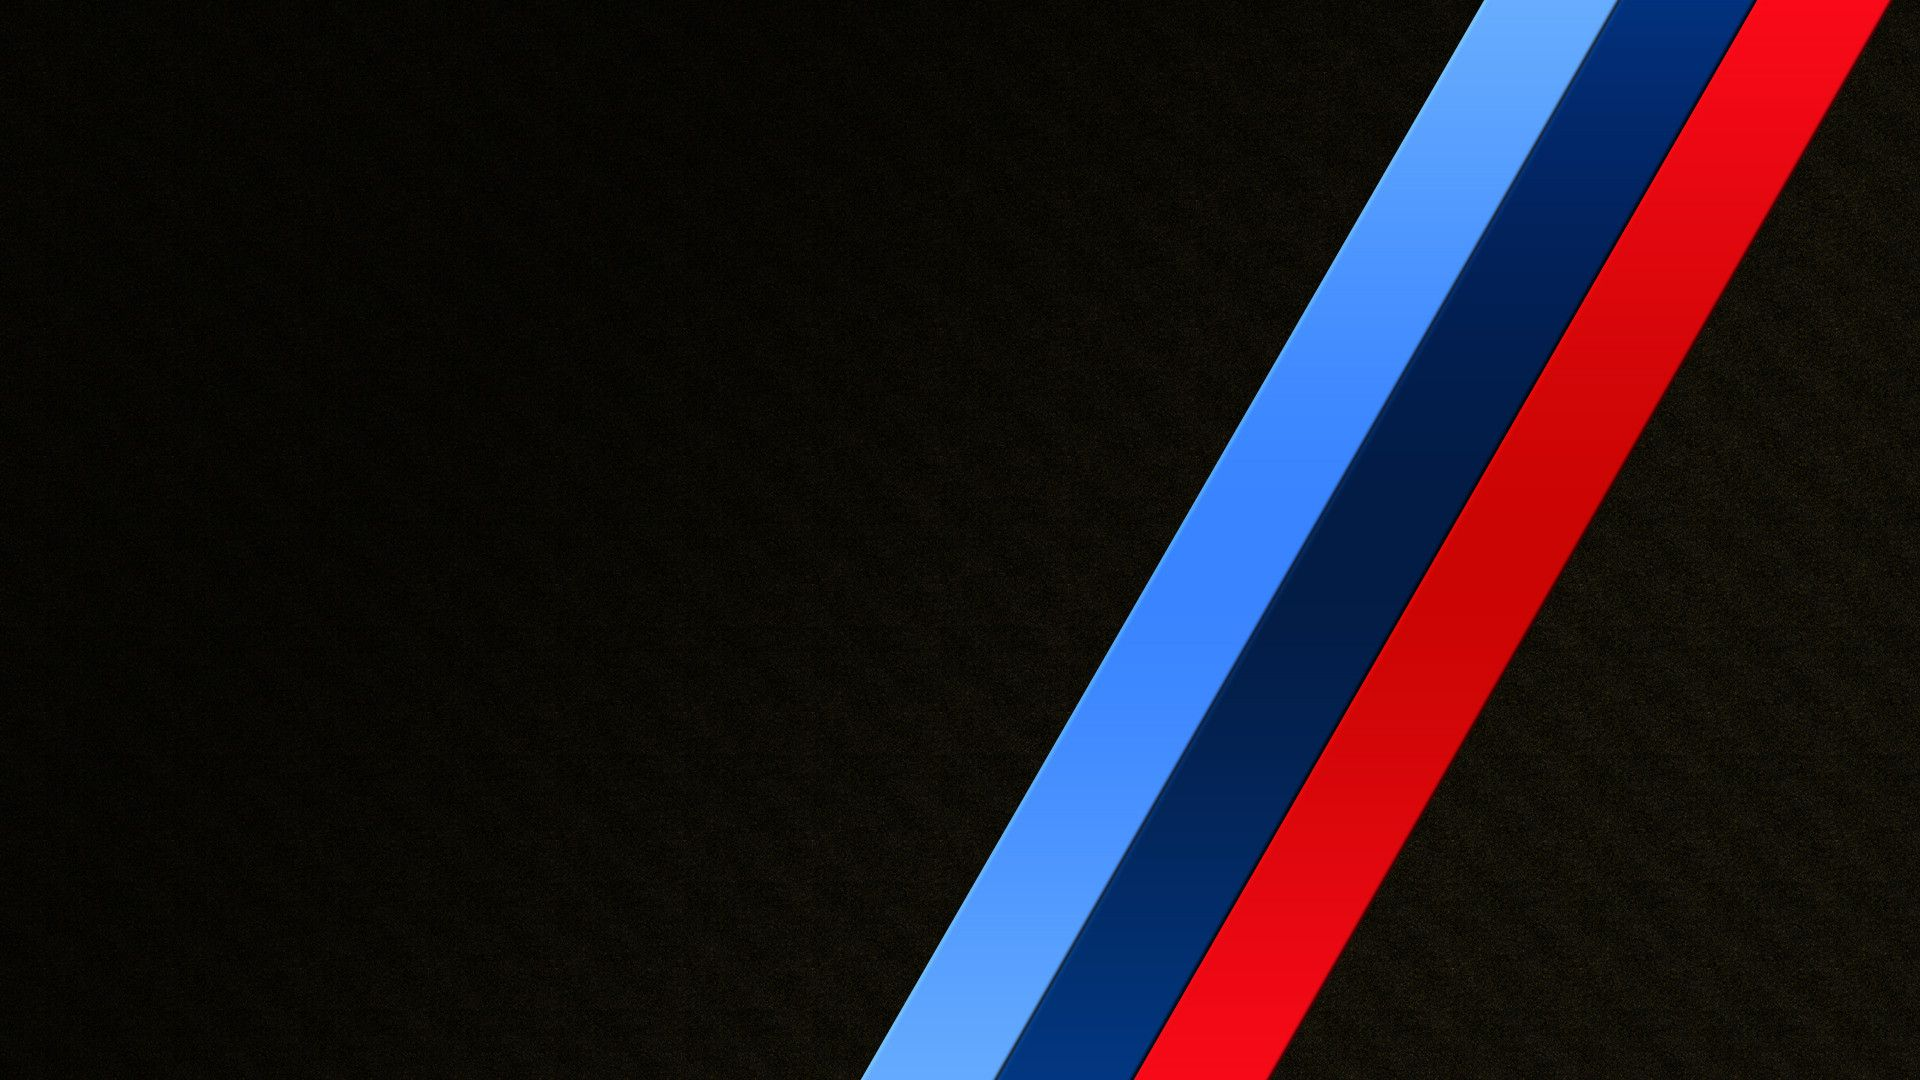 72 Bmw M Logo Wallpaper On Wallpapersafari